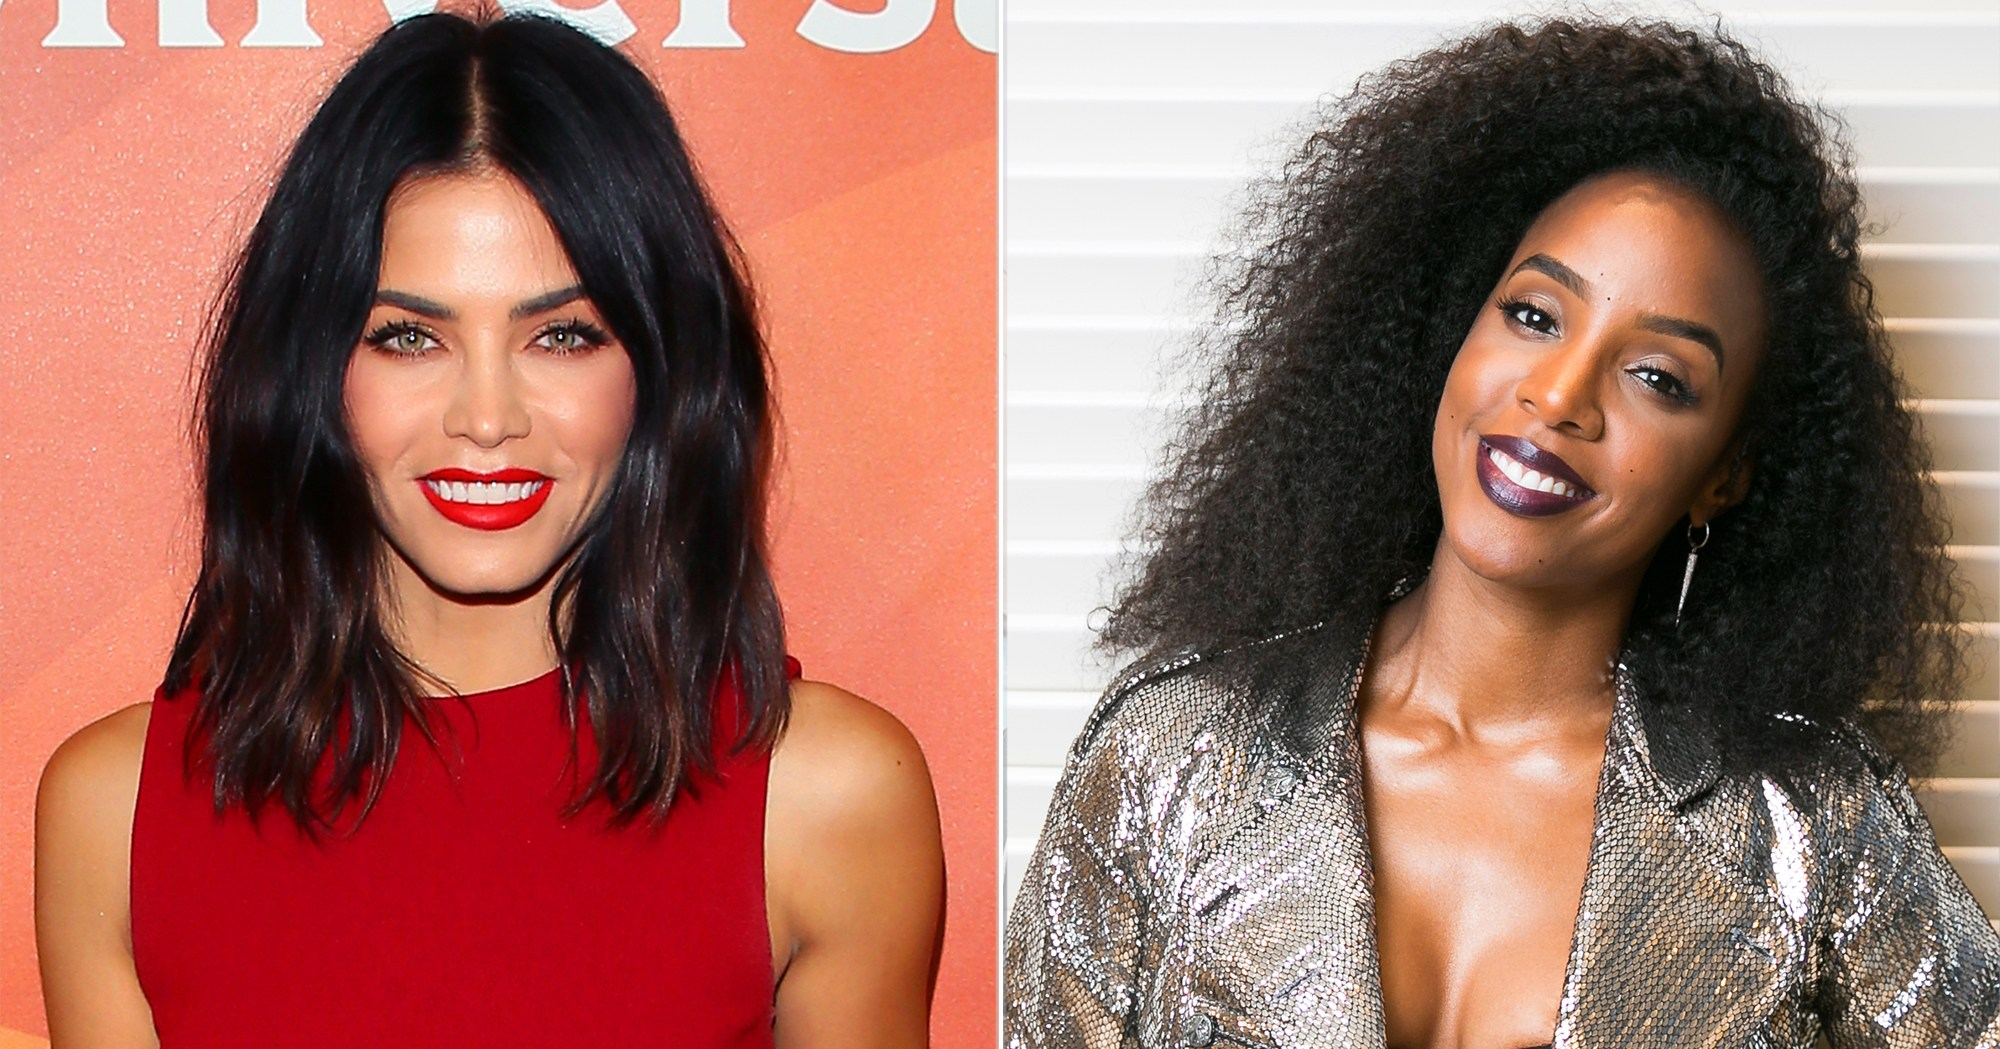 What's for Breakfast: Healthy Stars Like Jenna Dewan and Heidi Klum Tell Us What They Really Eat Every Morning